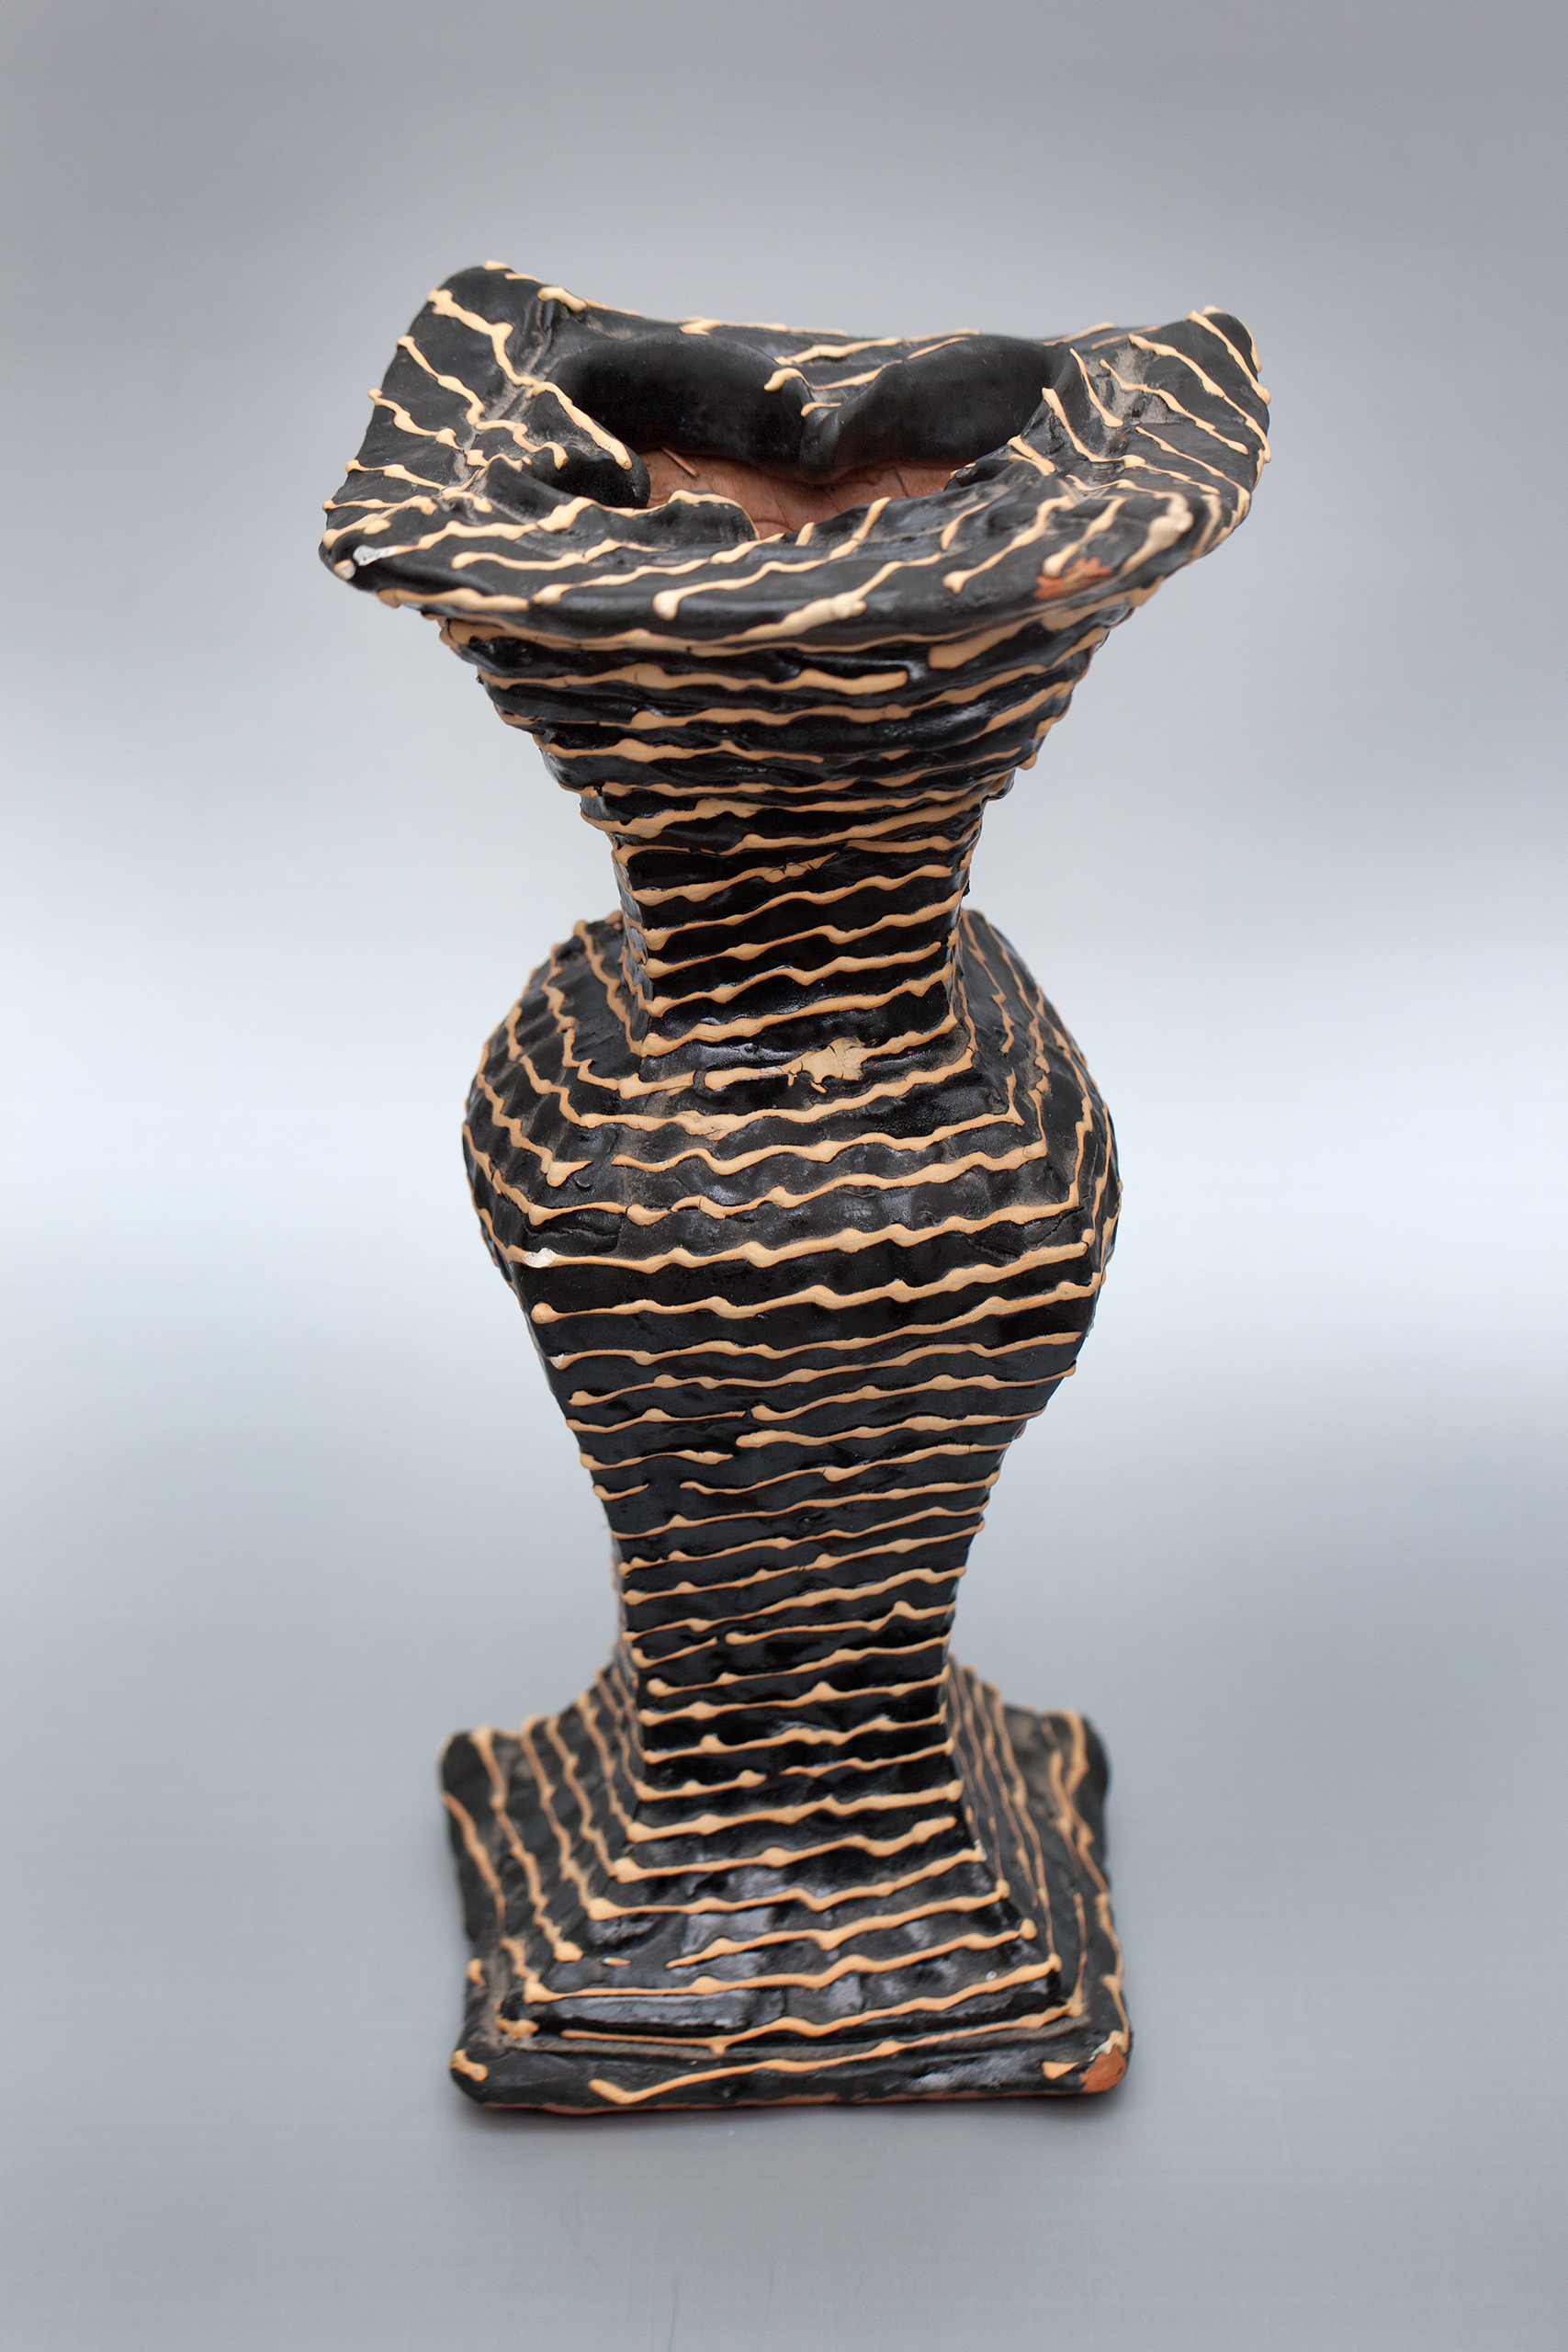 Richard Parker Ceramic